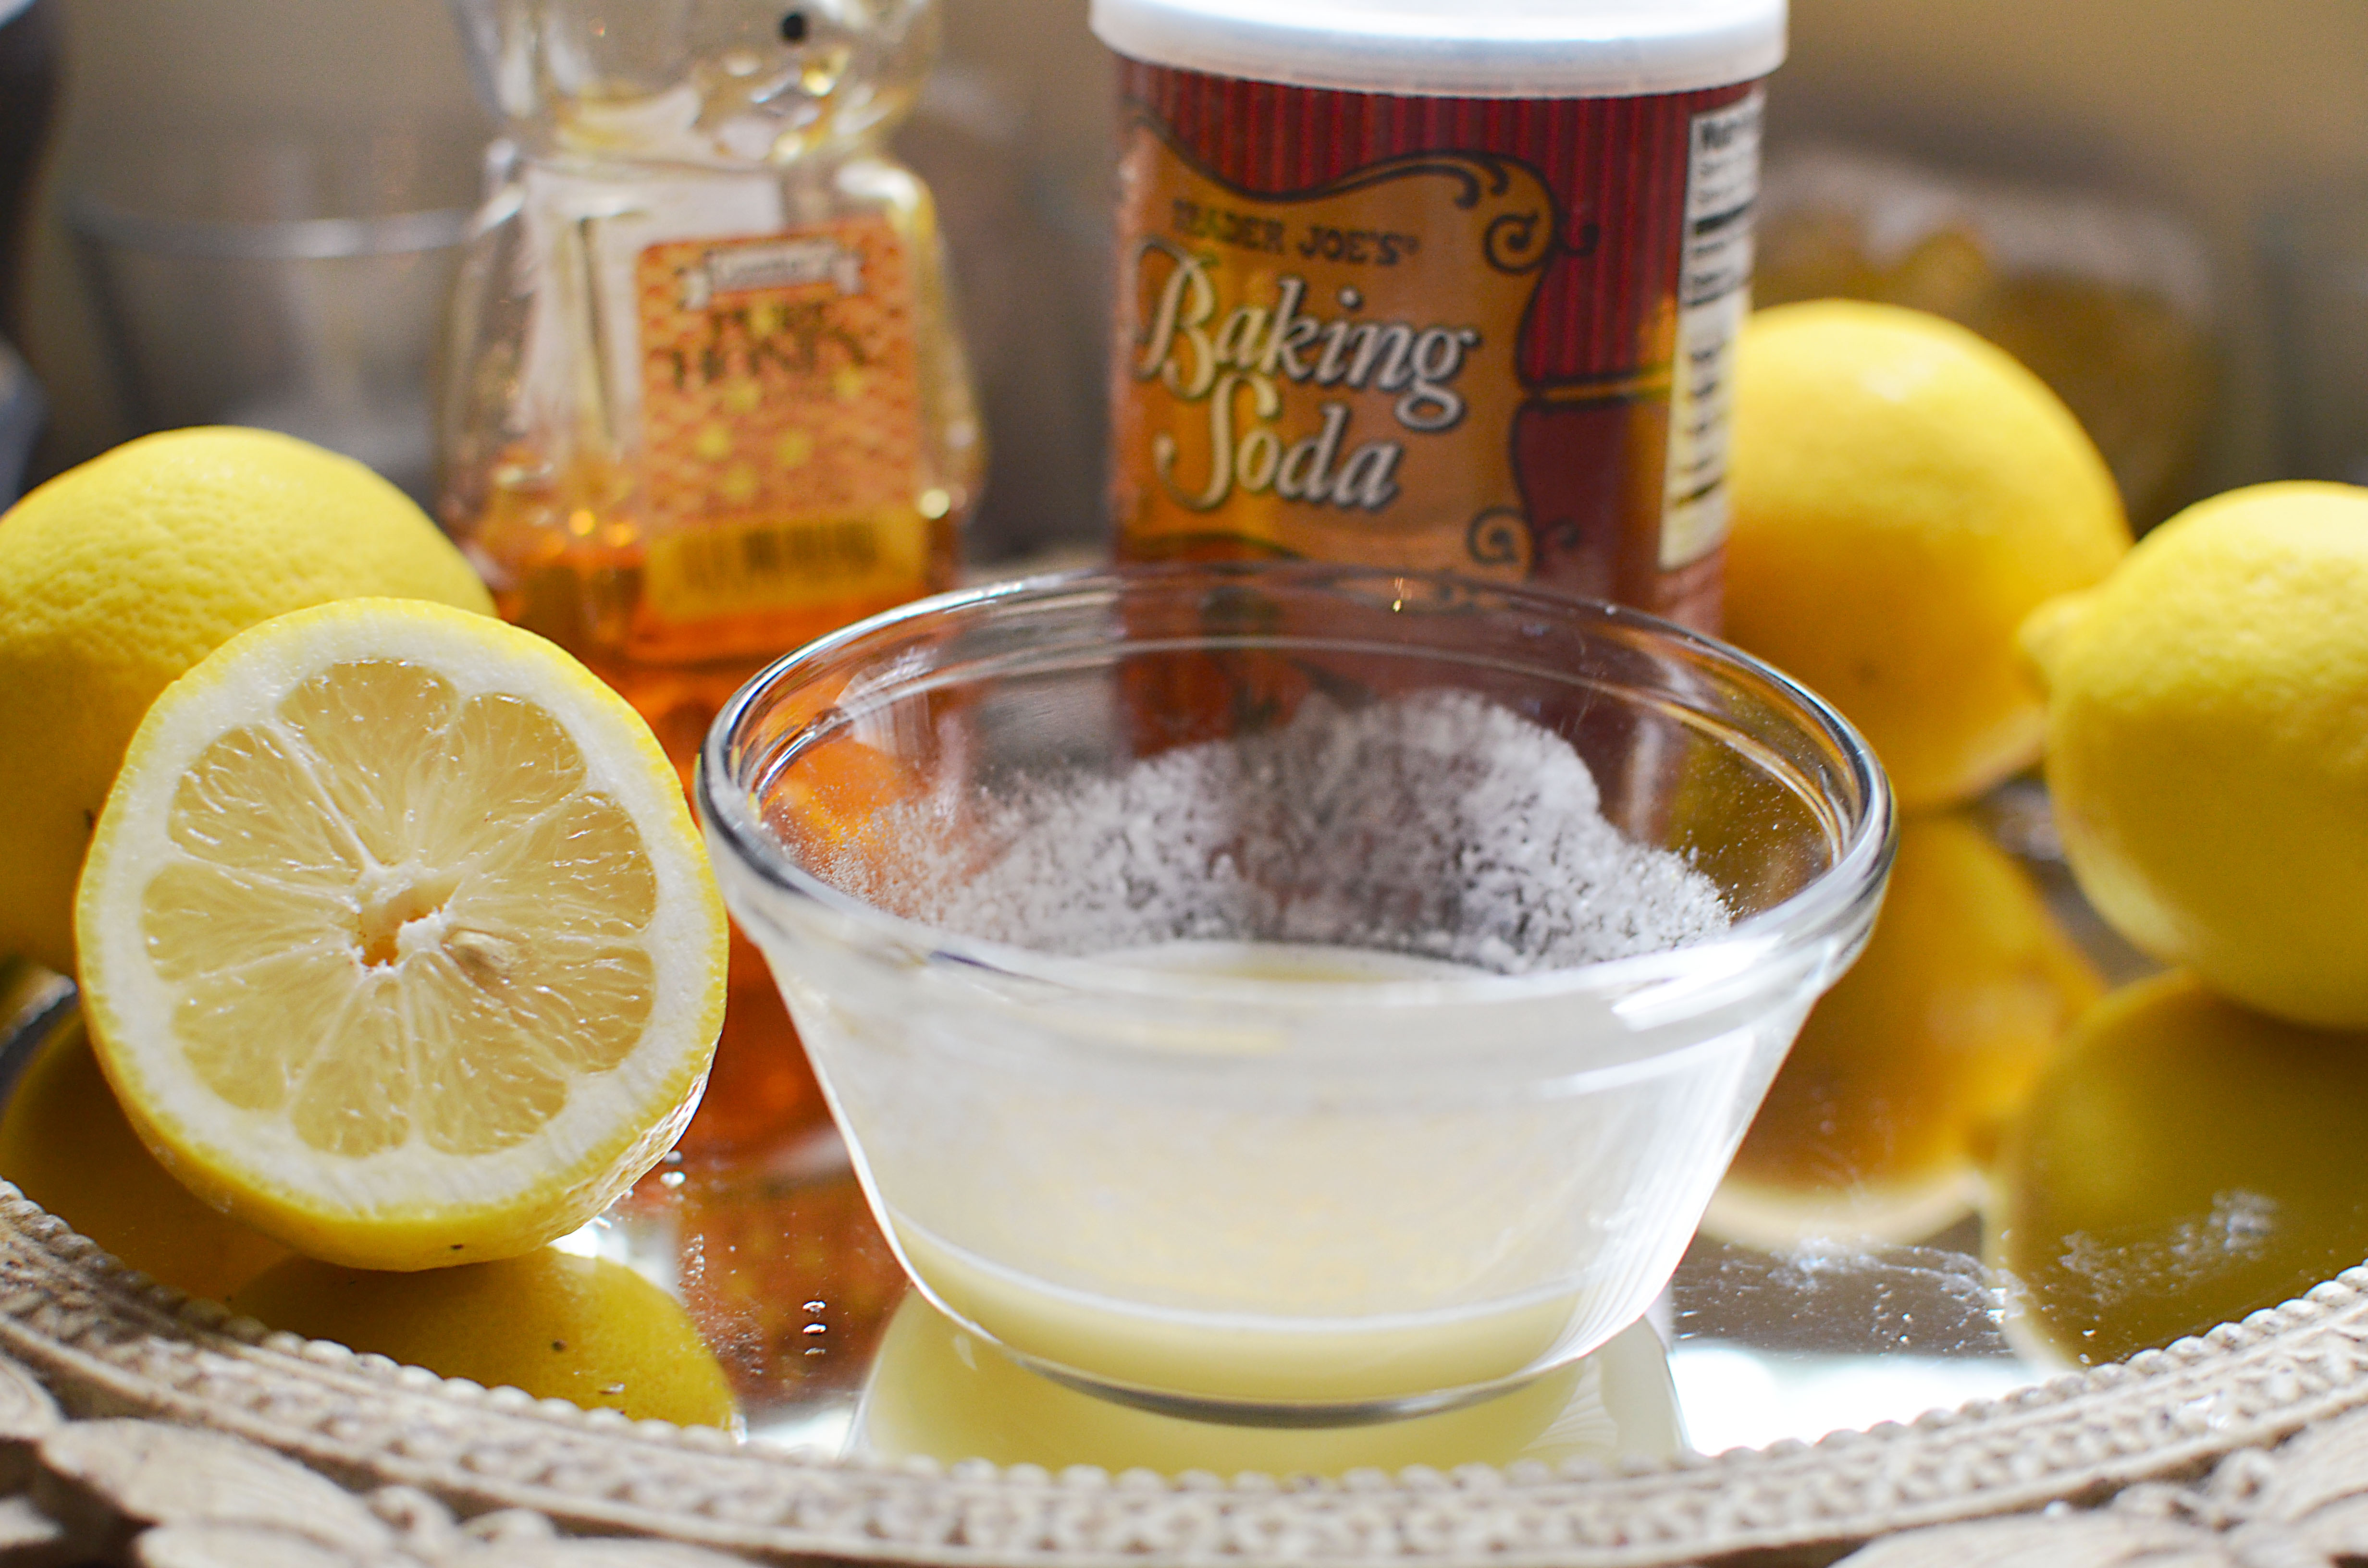 Mixing Baking Soda And Lemon Life Coach Code